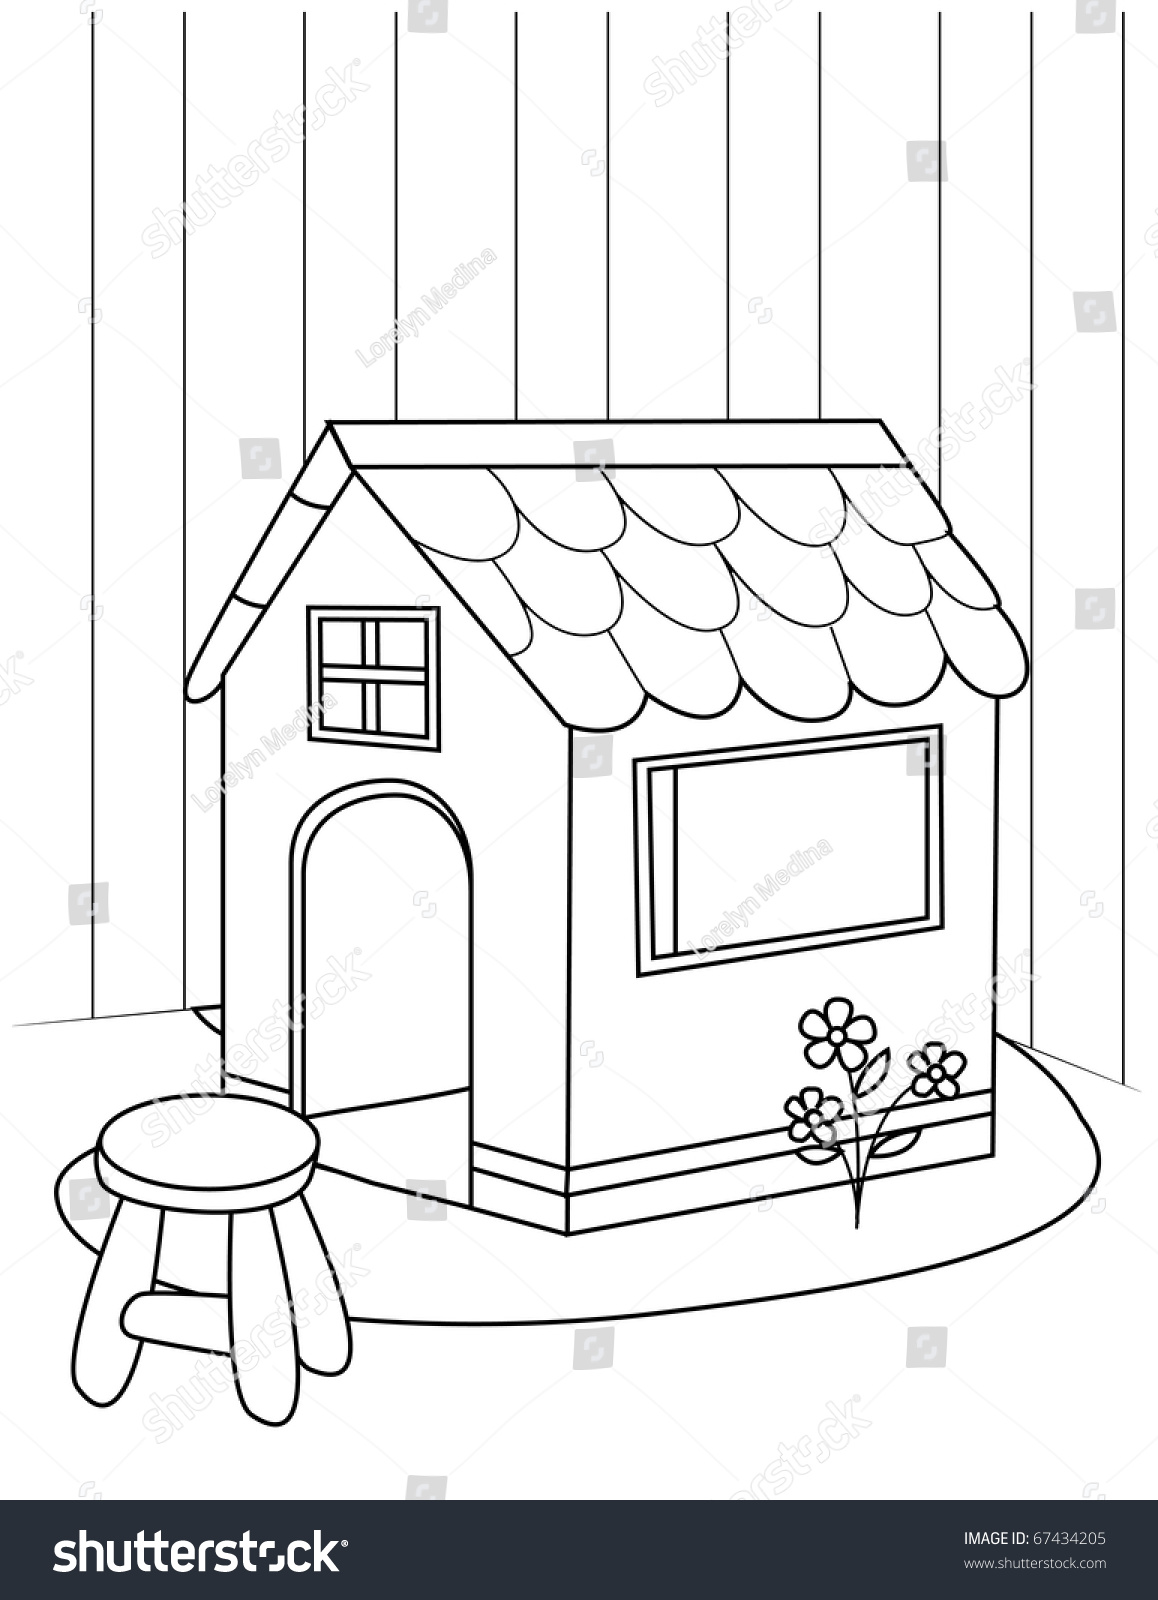 Line Art Illustration Playhouse Coloring Page Stock Vector ...